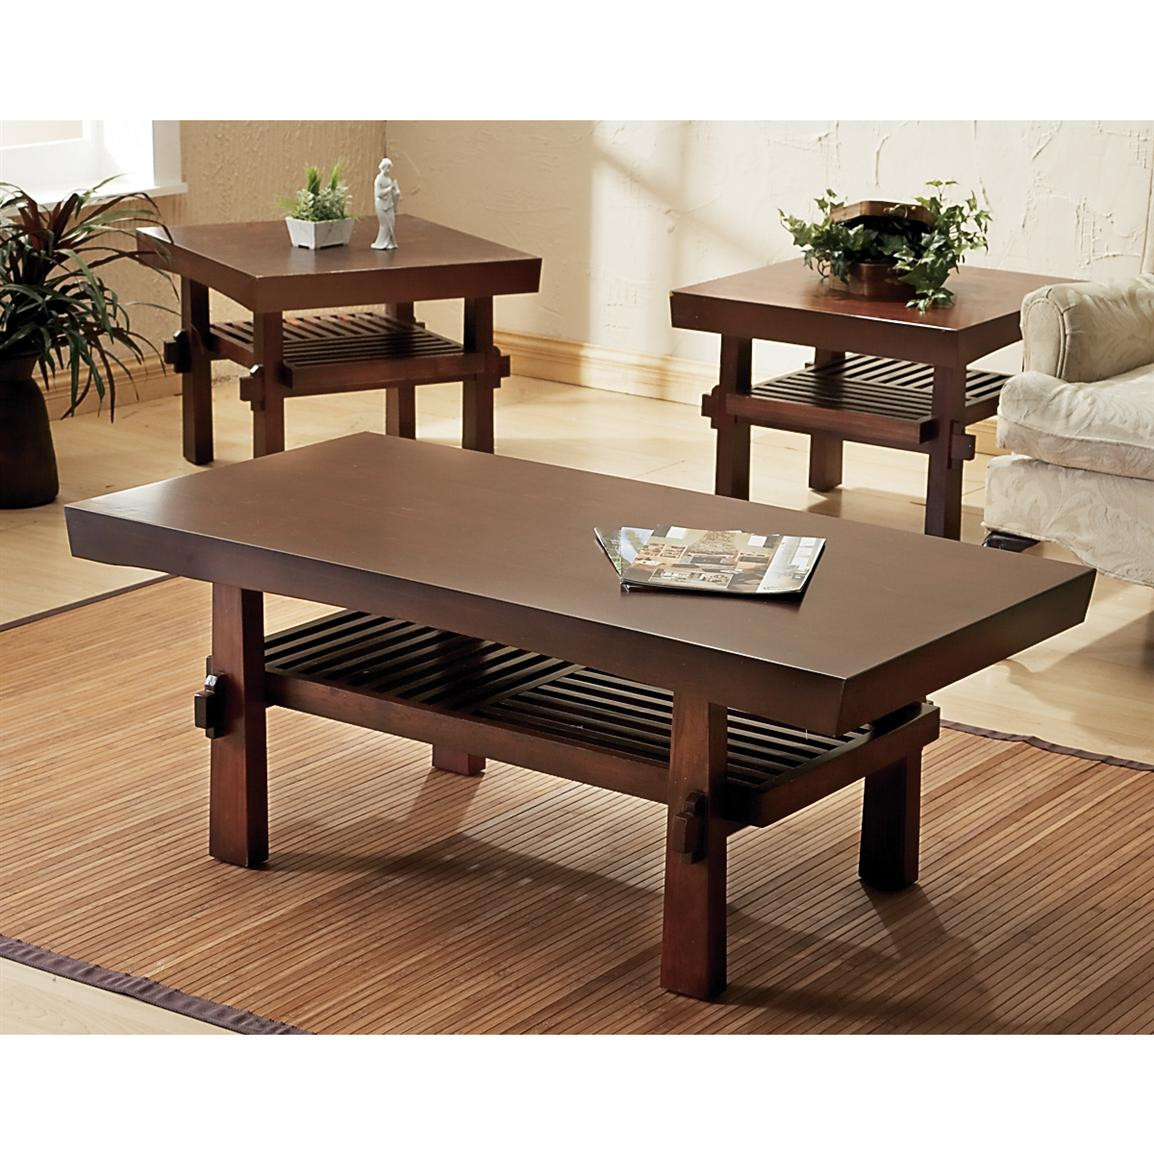 Best ideas about Coffee Table For Sale . Save or Pin Coffee Table Coffee Table And End Tables For Sale Now.